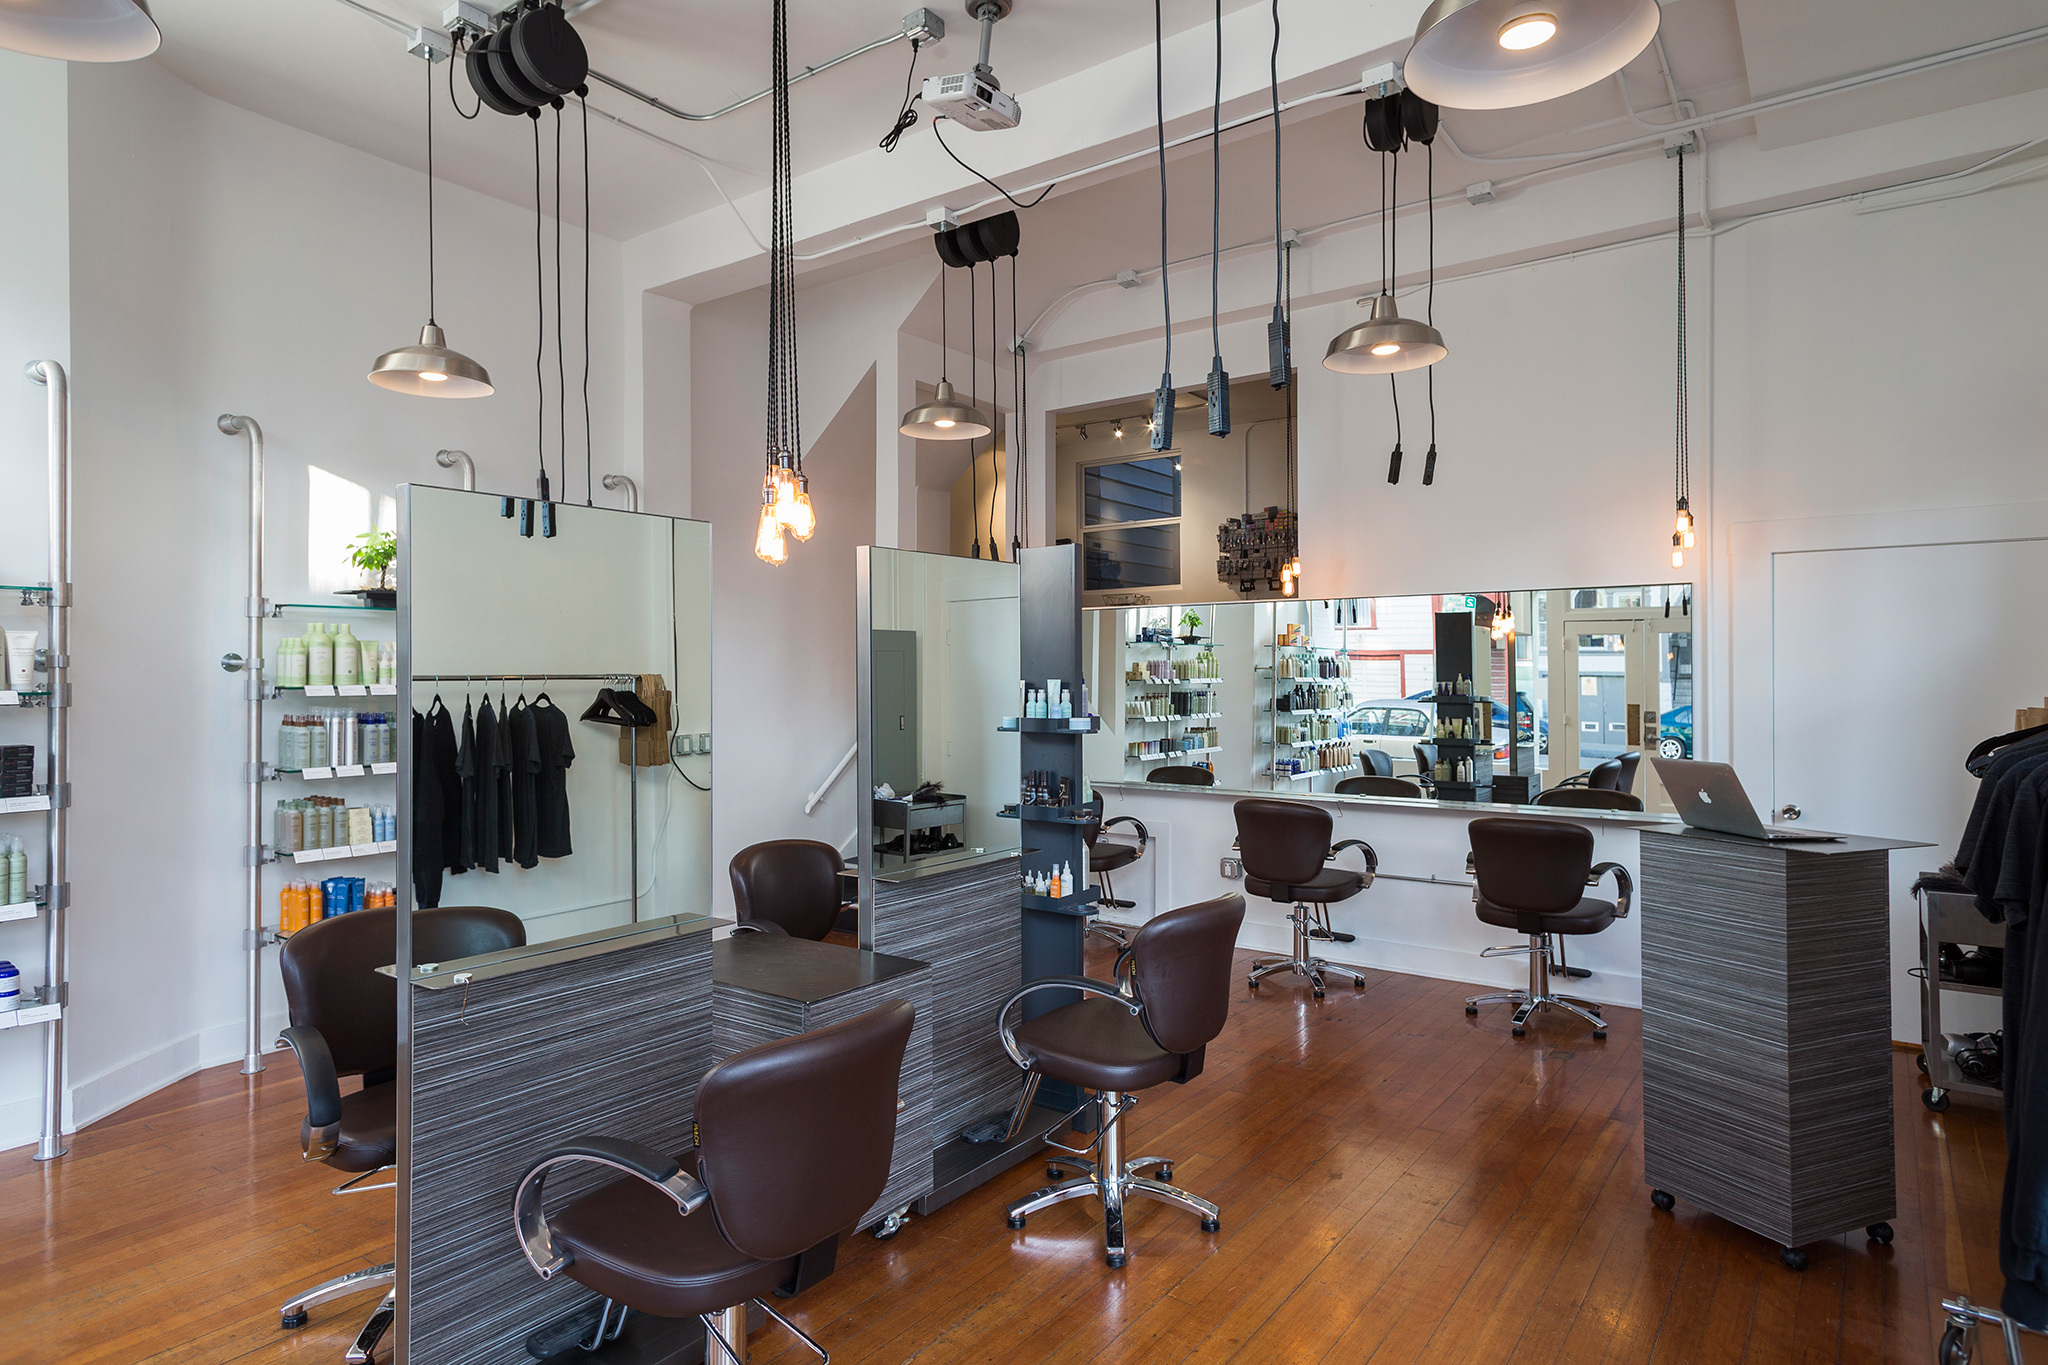 Best hair salons in san francisco for cuts and color for A design and color salon little rock